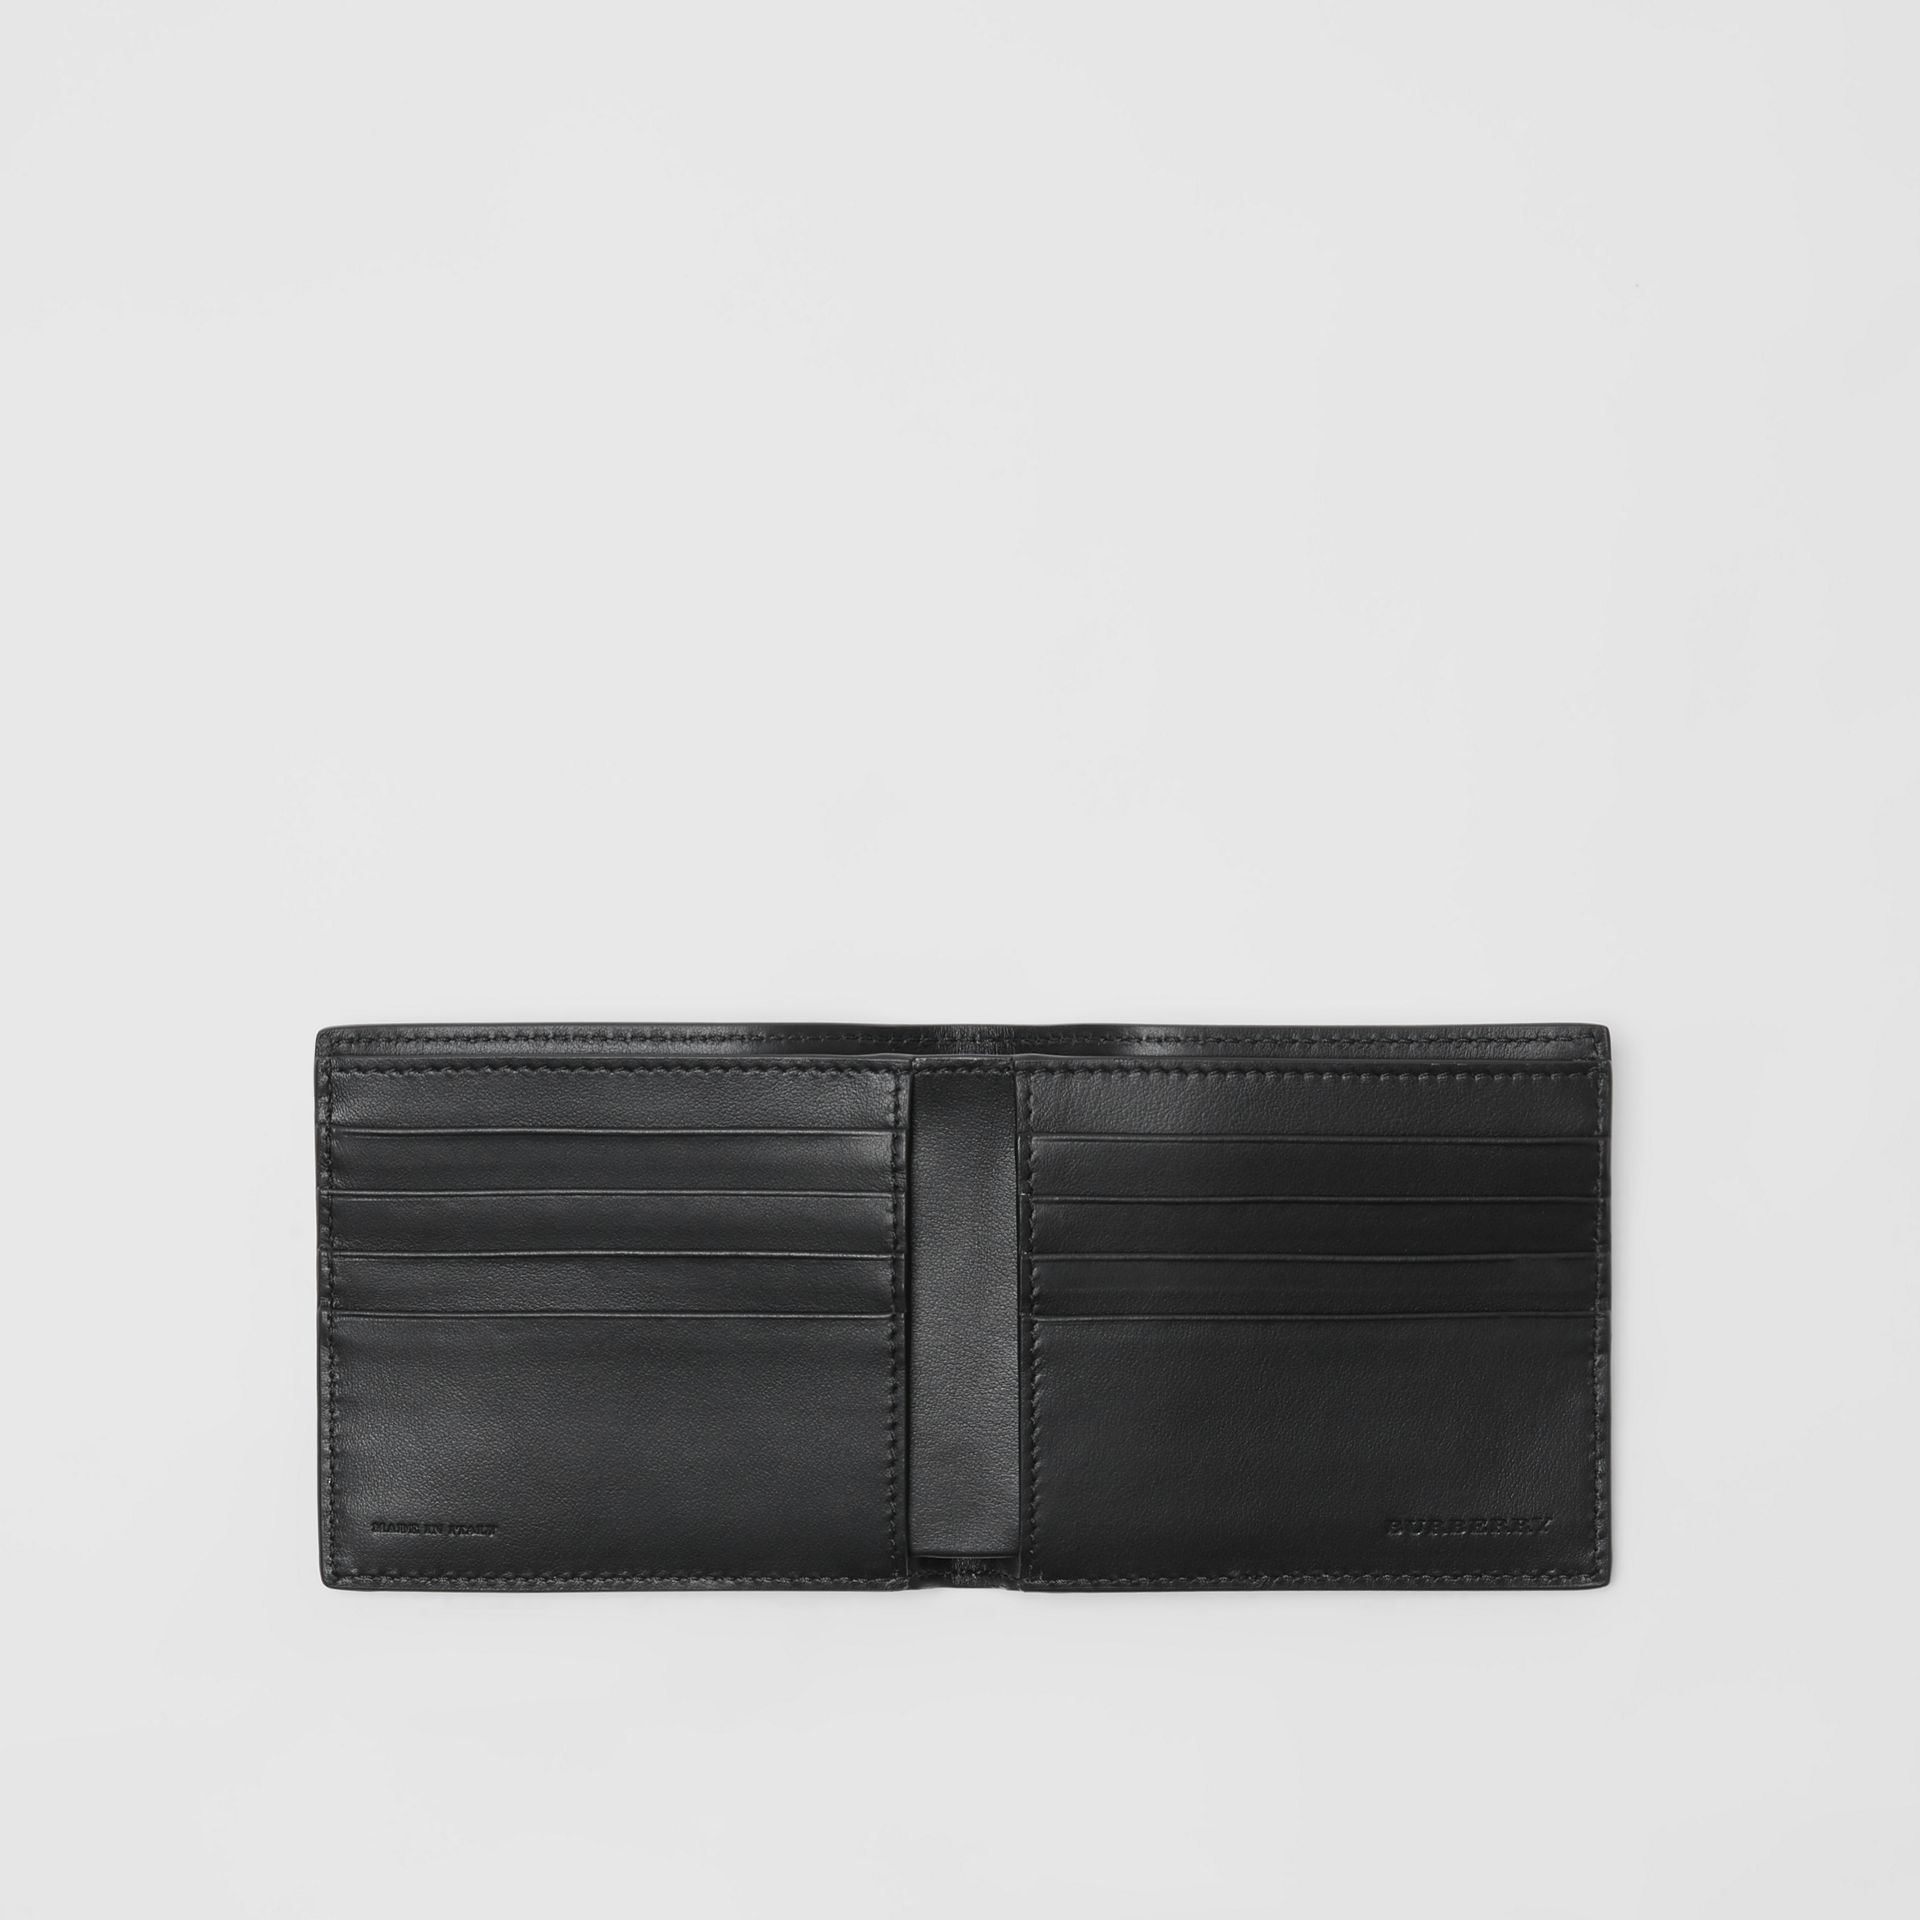 Dreamscape Print Leather International Bifold Wallet in Black/white - Men | Burberry United Kingdom - gallery image 3